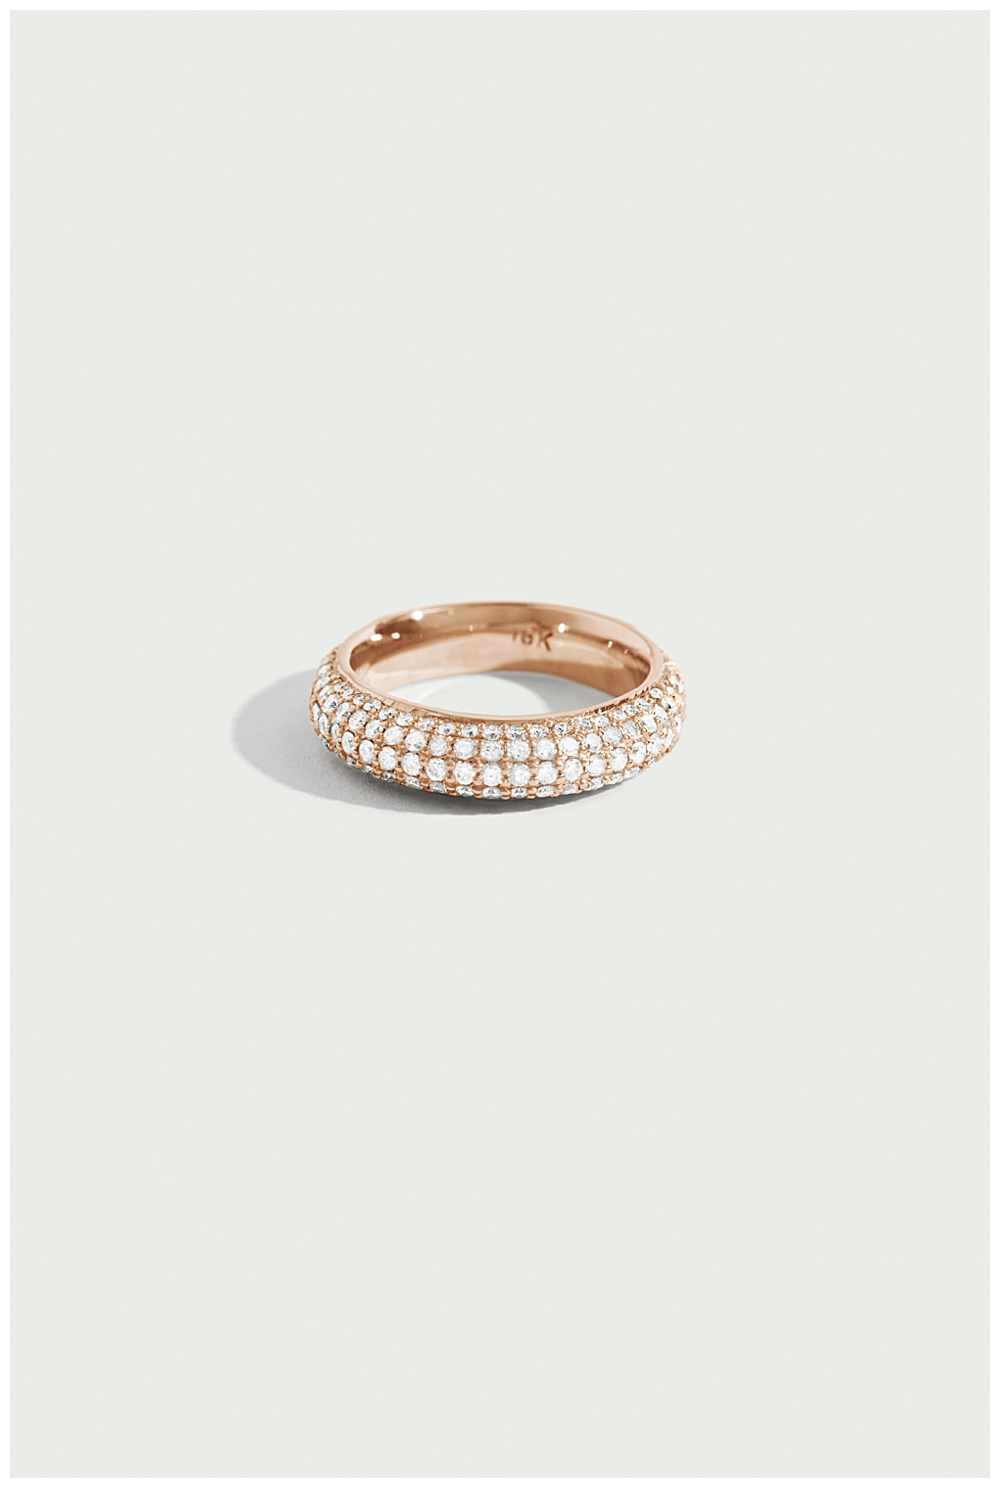 unisex-engagement-rings-4